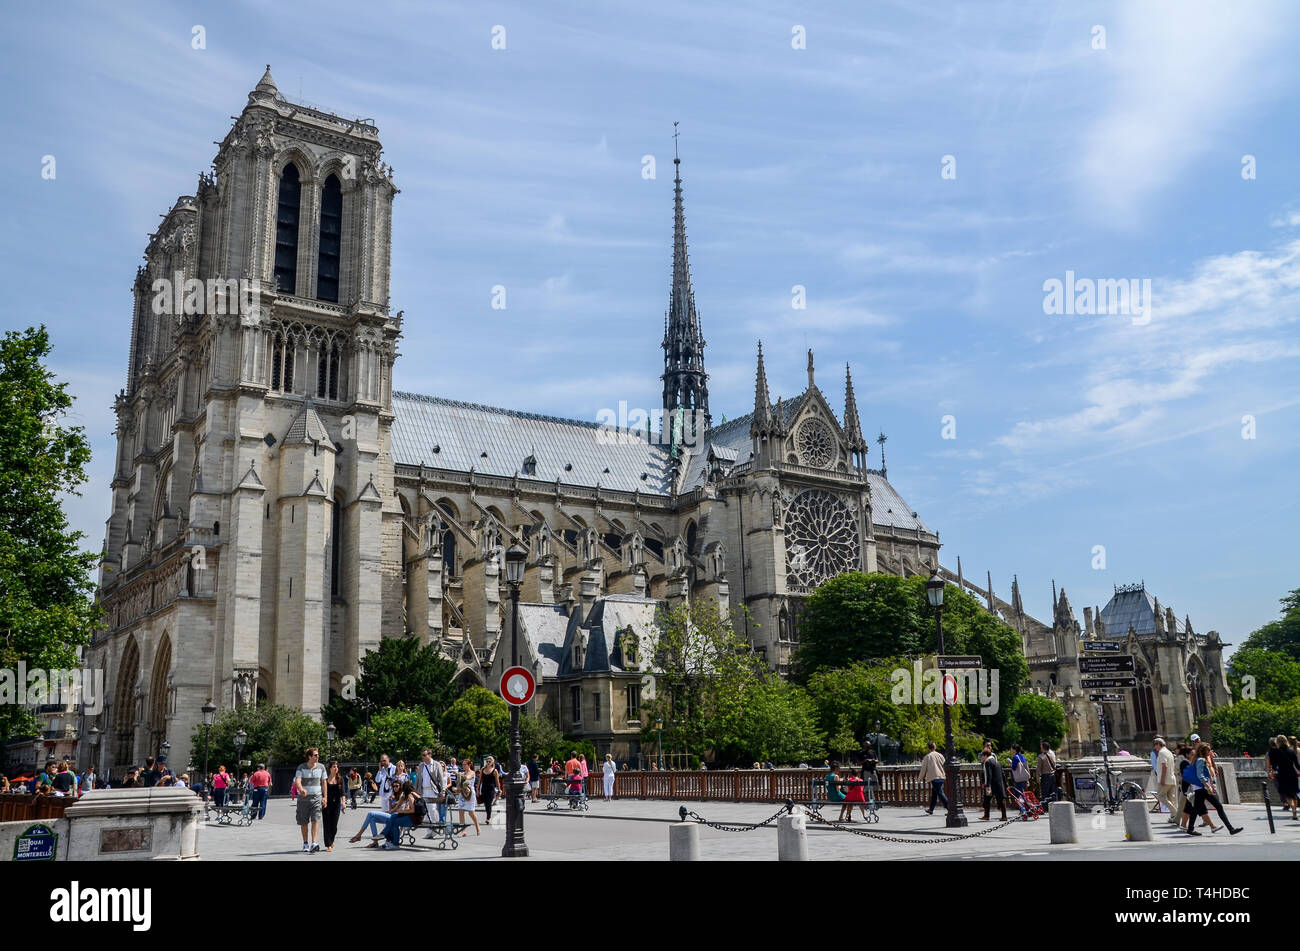 Notre-Dame de Paris medieval Catholic cathedral on the Île de la Cité in the 4th arrondissement of Paris France. South side rose window, spire, people - Stock Image